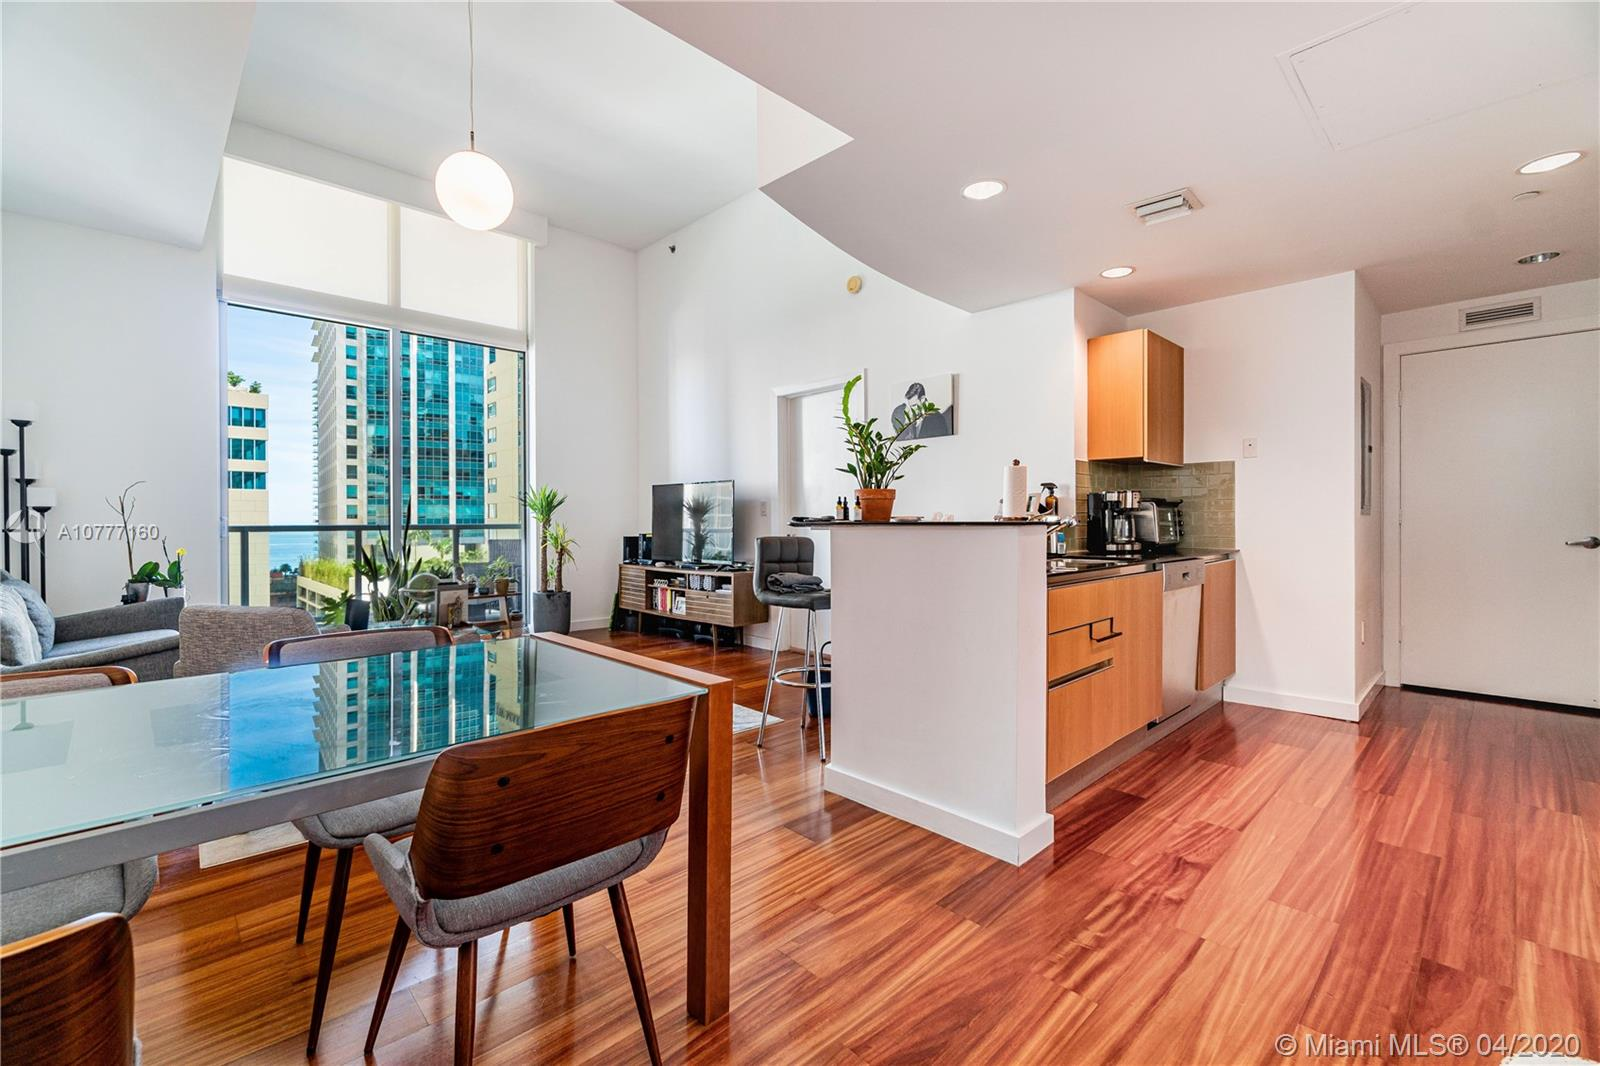 Welcome to 1060 Brickell, one of the most sought after buildings in the heart of Brickell. This One bedroom unit has lot of light thanks to East orientation with water views from the moment you open the door. Also has a bigger feel thanks to its oversize height ceilings as floor 12th has a higher height that other floors as it is the amenities level. Impact windows, hardwood floors, kitchen and bath updated 3 years ago 15-16' ceilings. half bath is not available on this line. Pool, gym, yoga room, virtual golf to name a few of the amenities on this same level. Unit is in pristine condition!